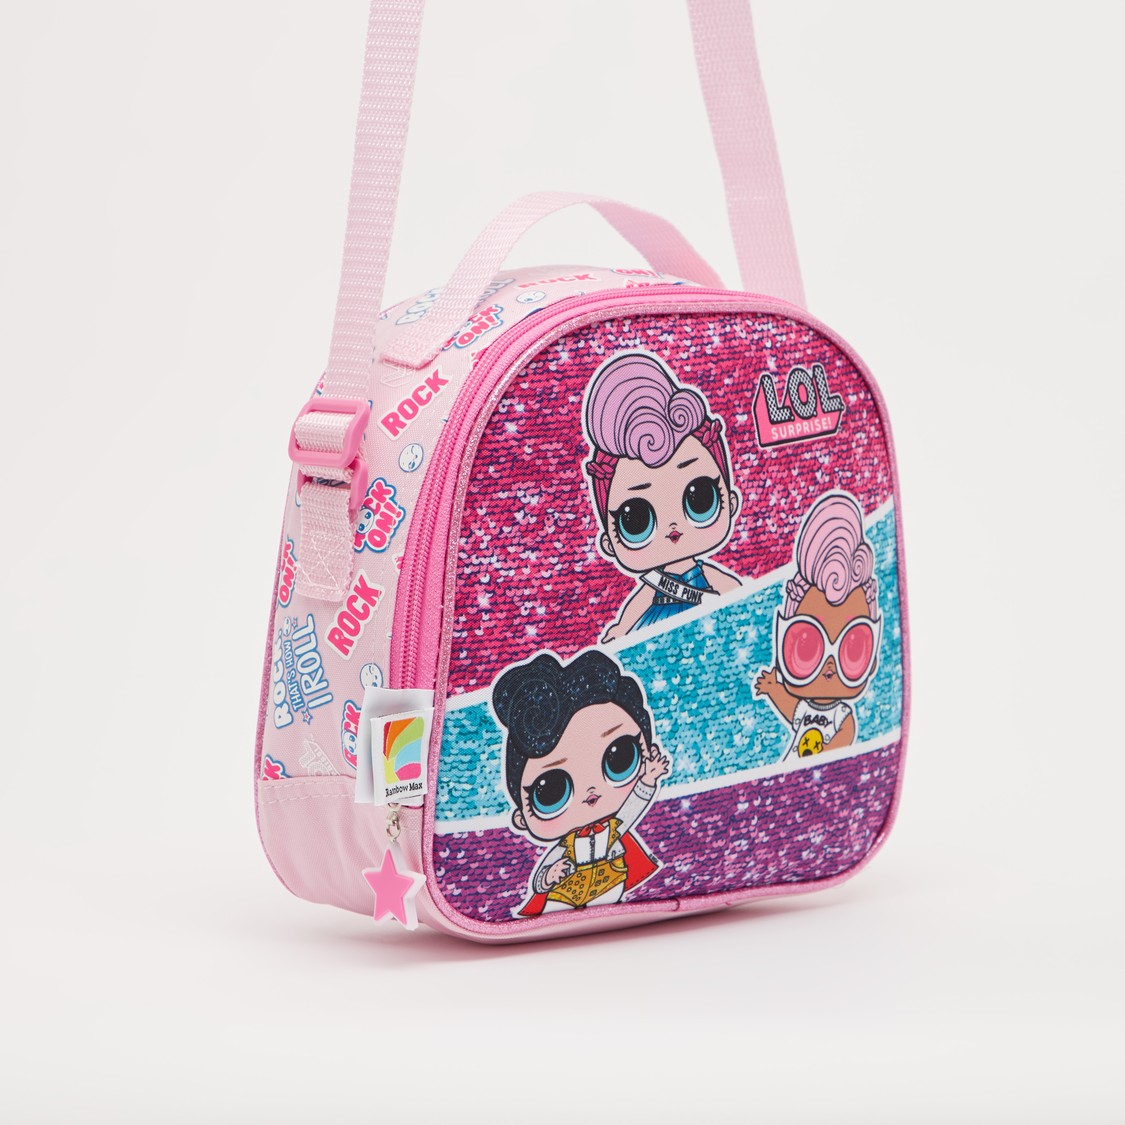 L.O.L. Surprise! Sequin Detail Lunch Bag